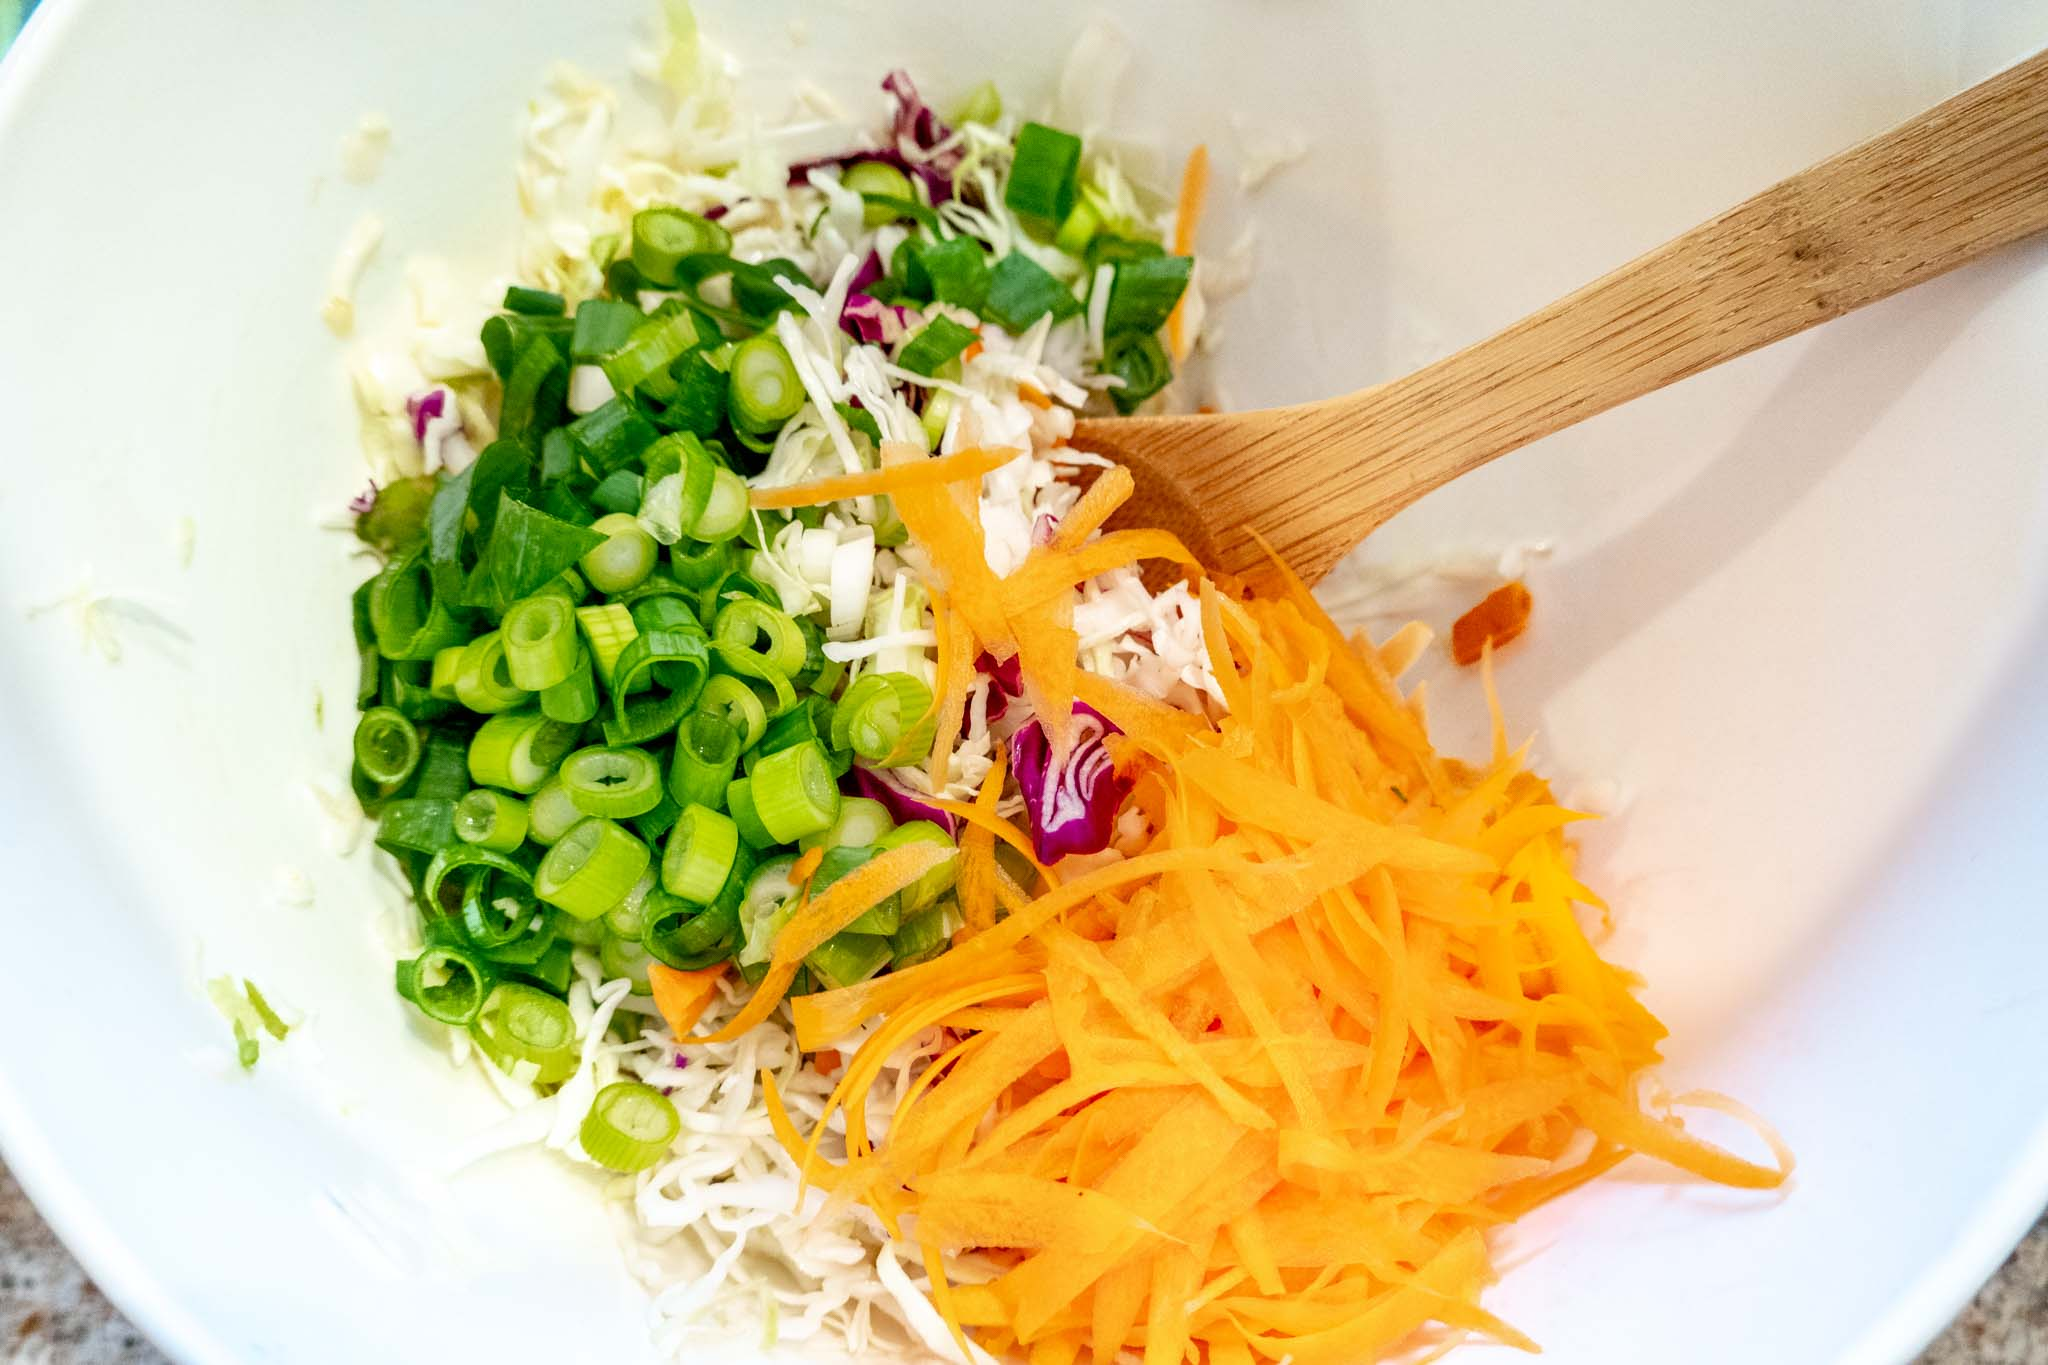 Chopped cabbage, carrots, and scallions in a bowl